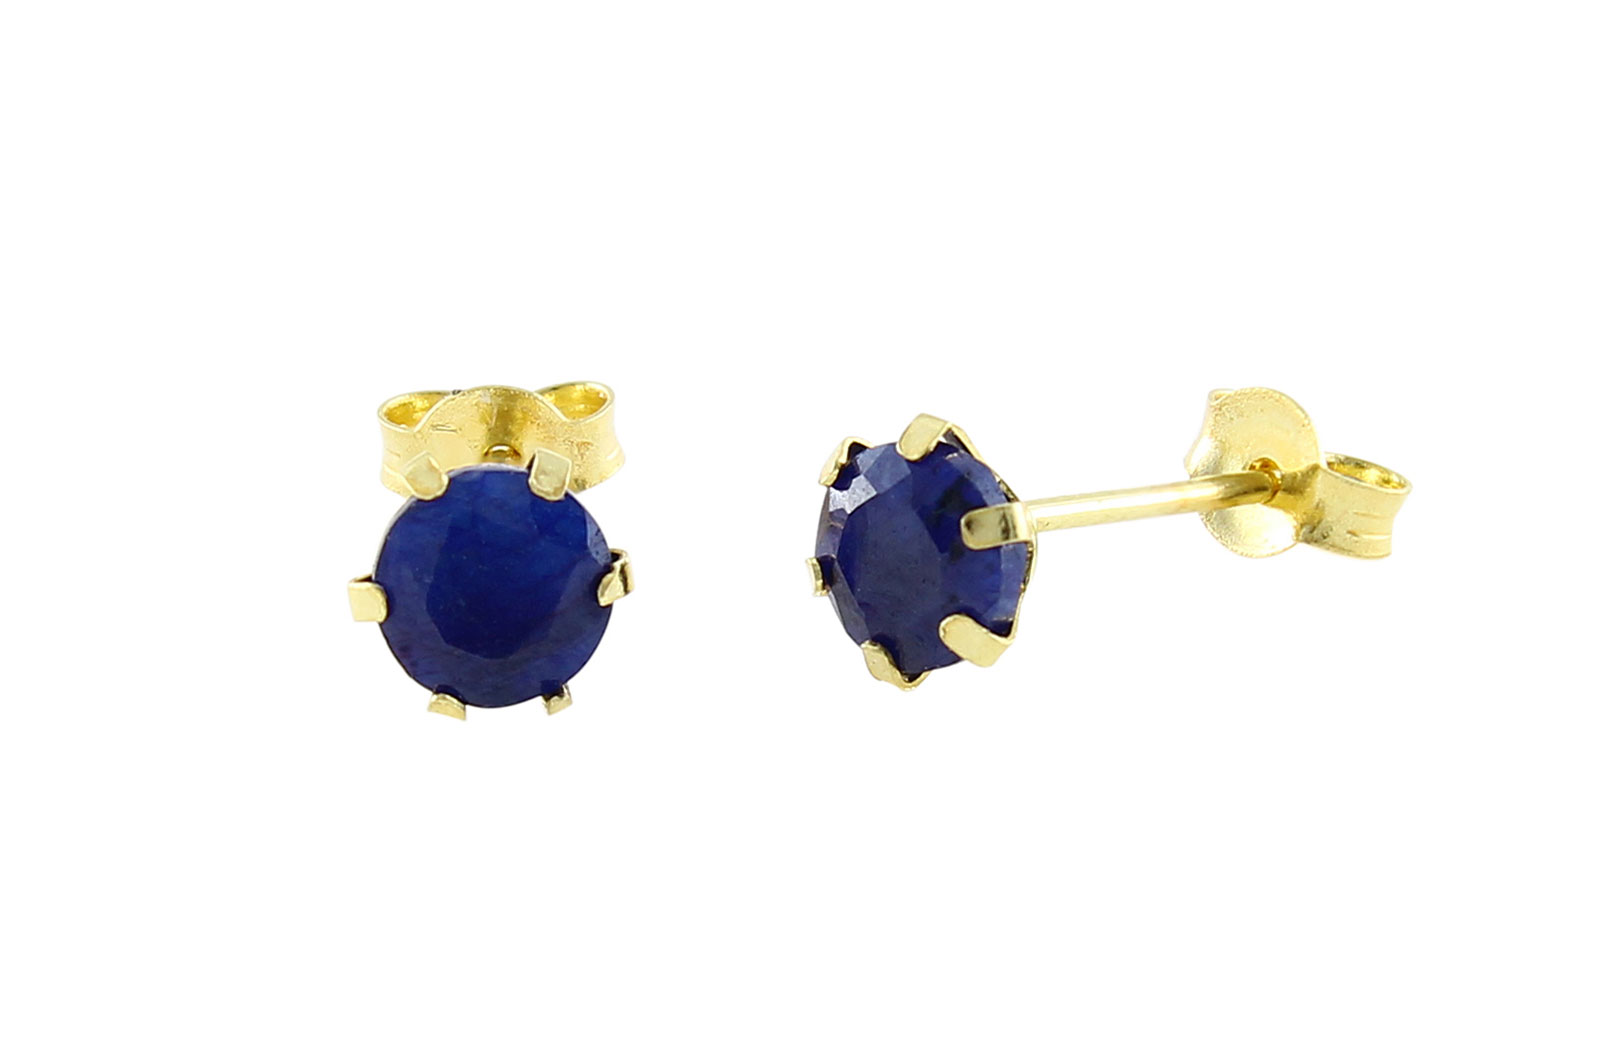 Vera Perla  18K Solid Yellow Gold and 4mm Genuine Sapphires Earrings